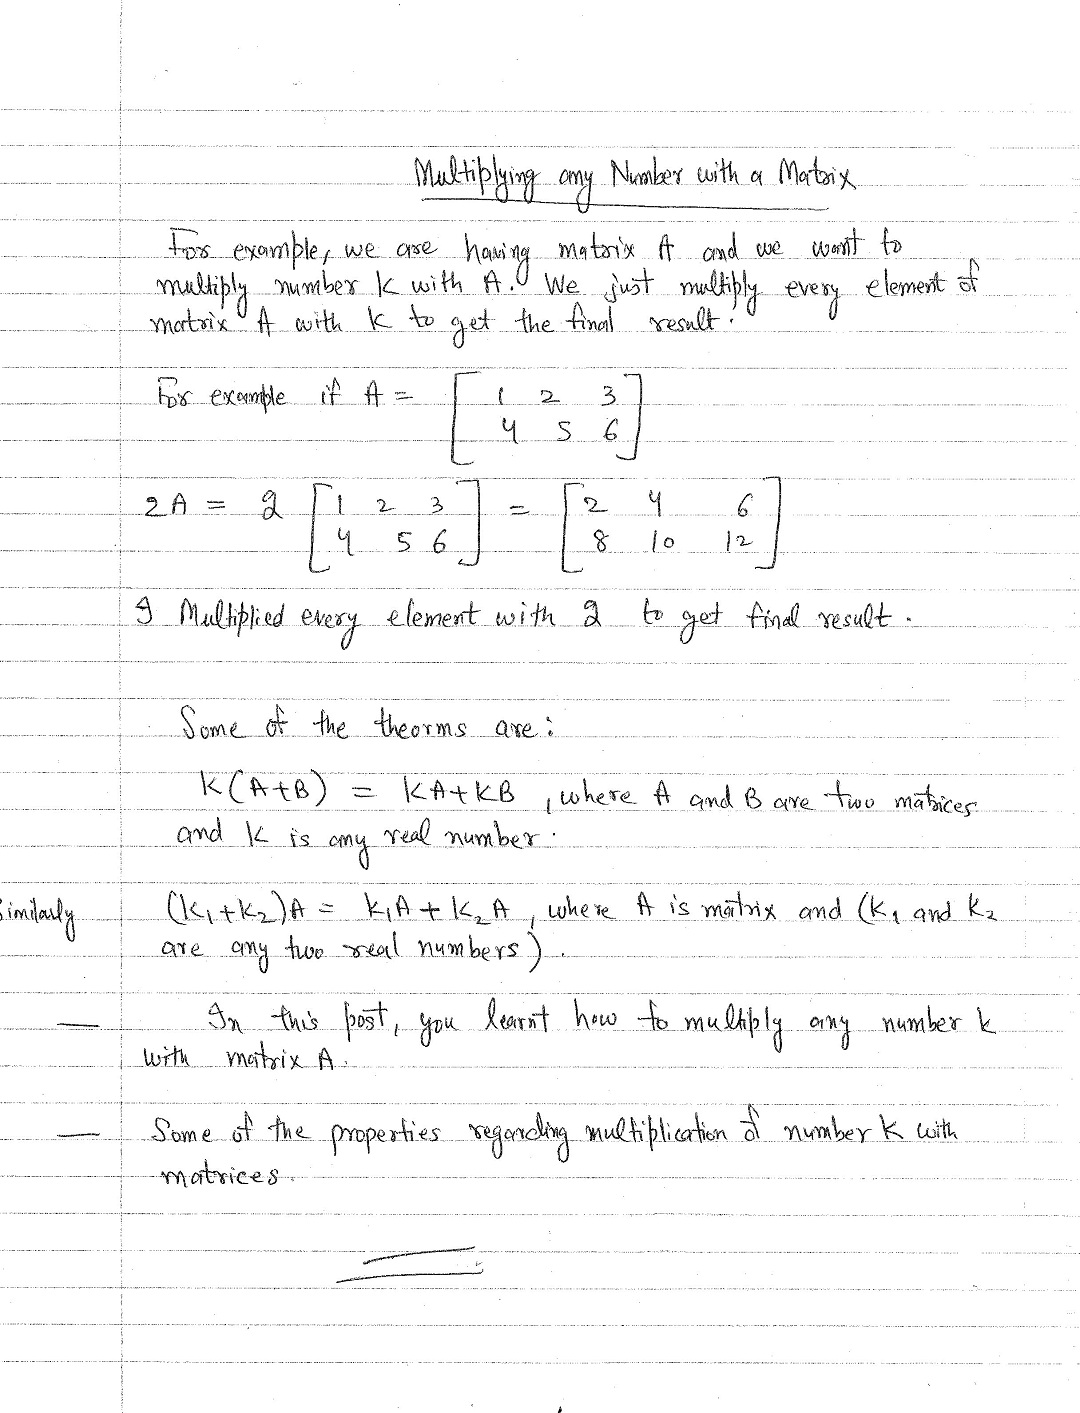 Describes how can we multiply any constant number with a matrix